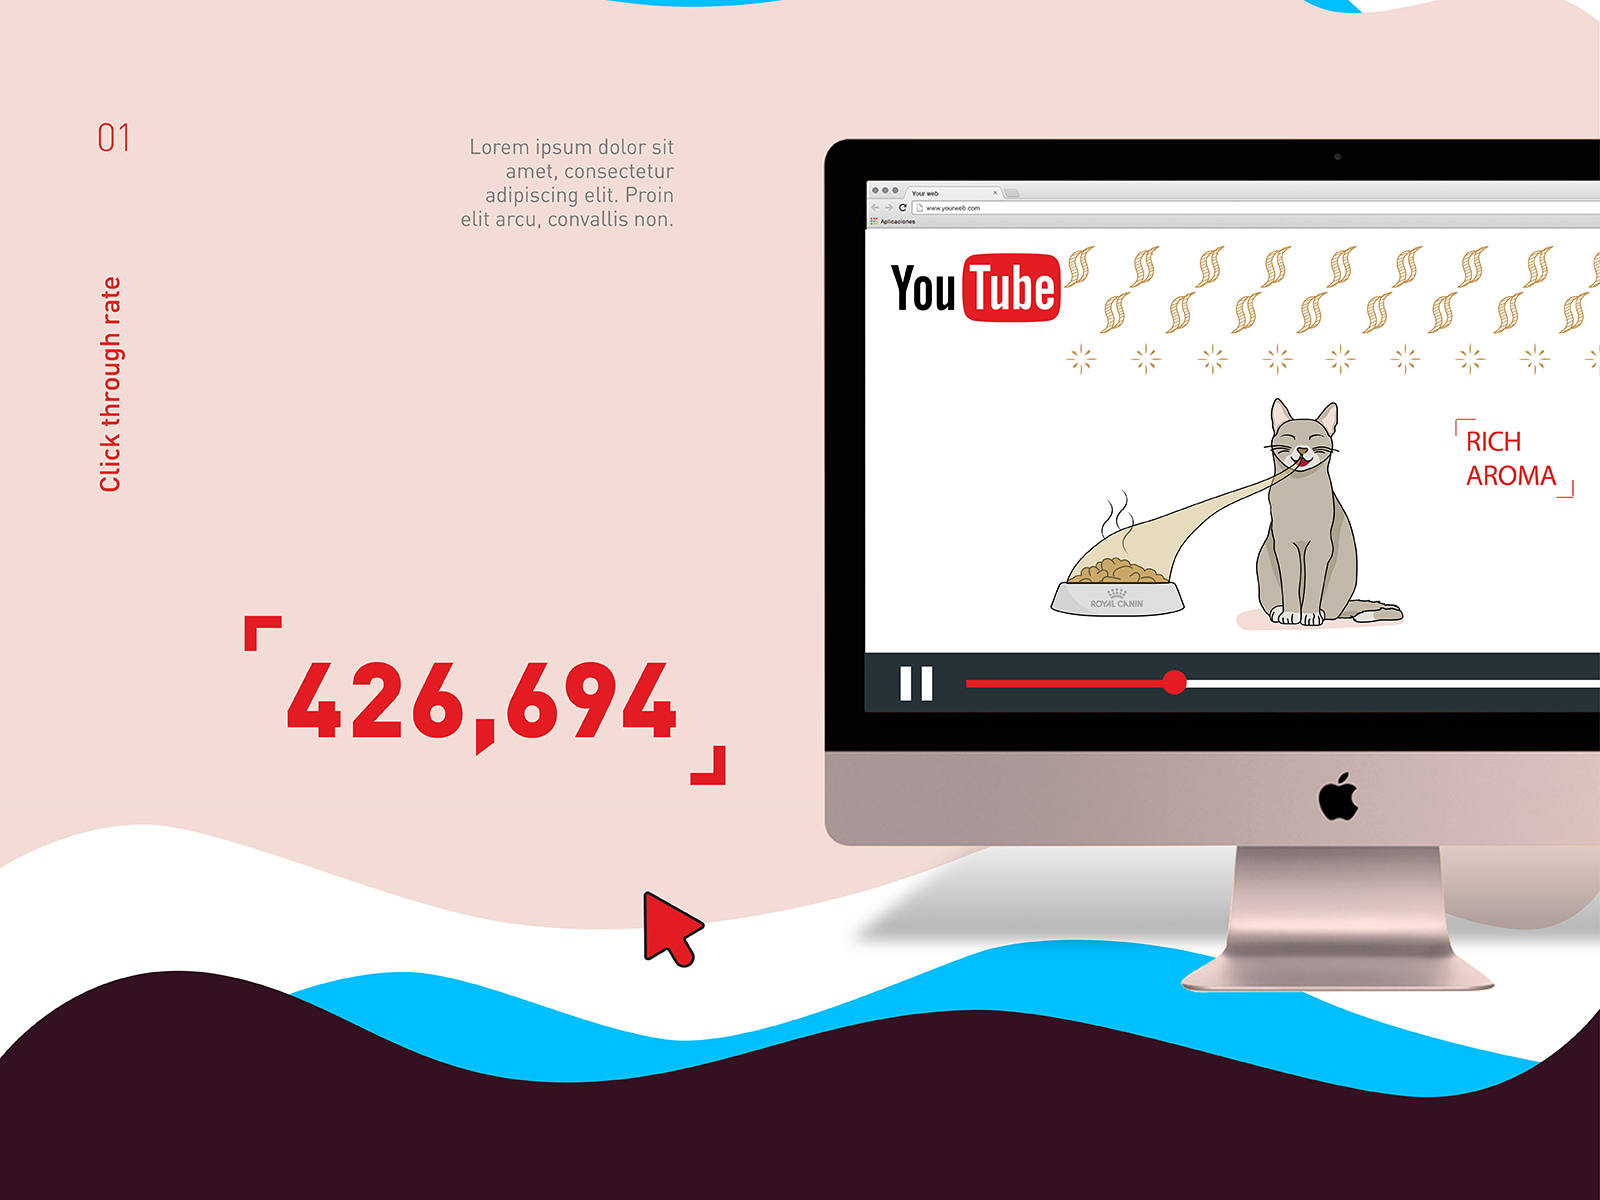 Royal Canin wet food promotional video views with ad buy was at 400,000 at the time of upload and climbing